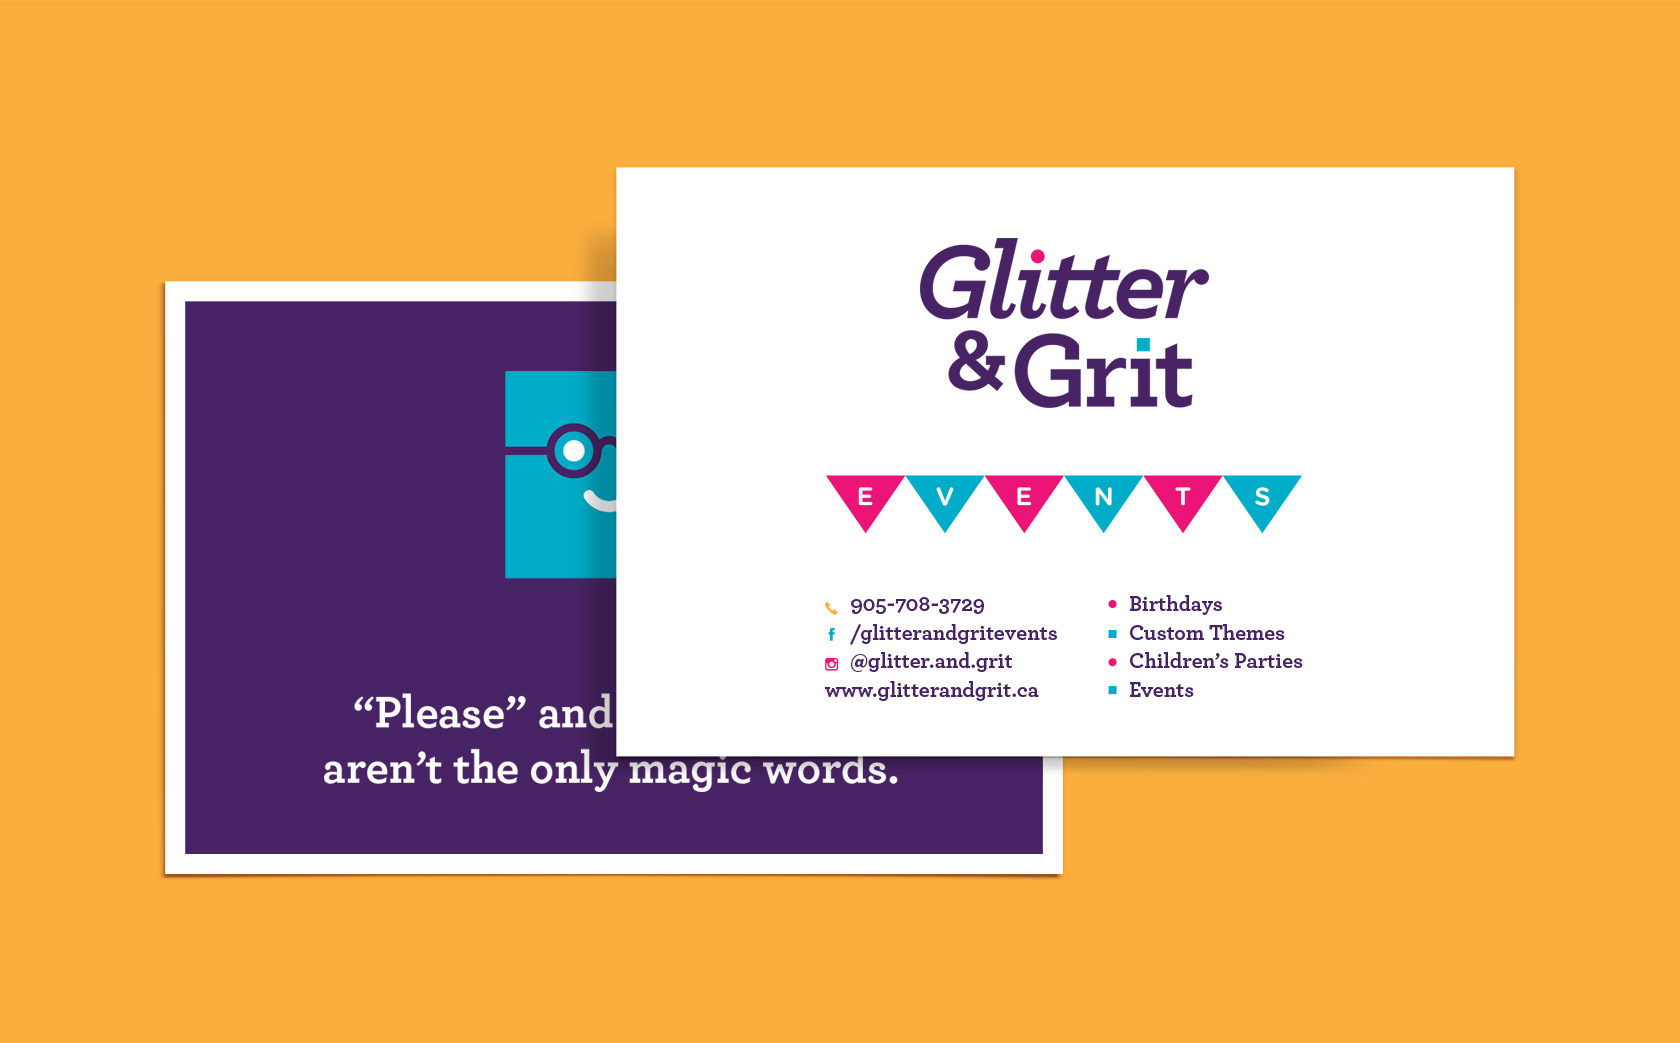 Glitter & Grit Flyer Design by Furia